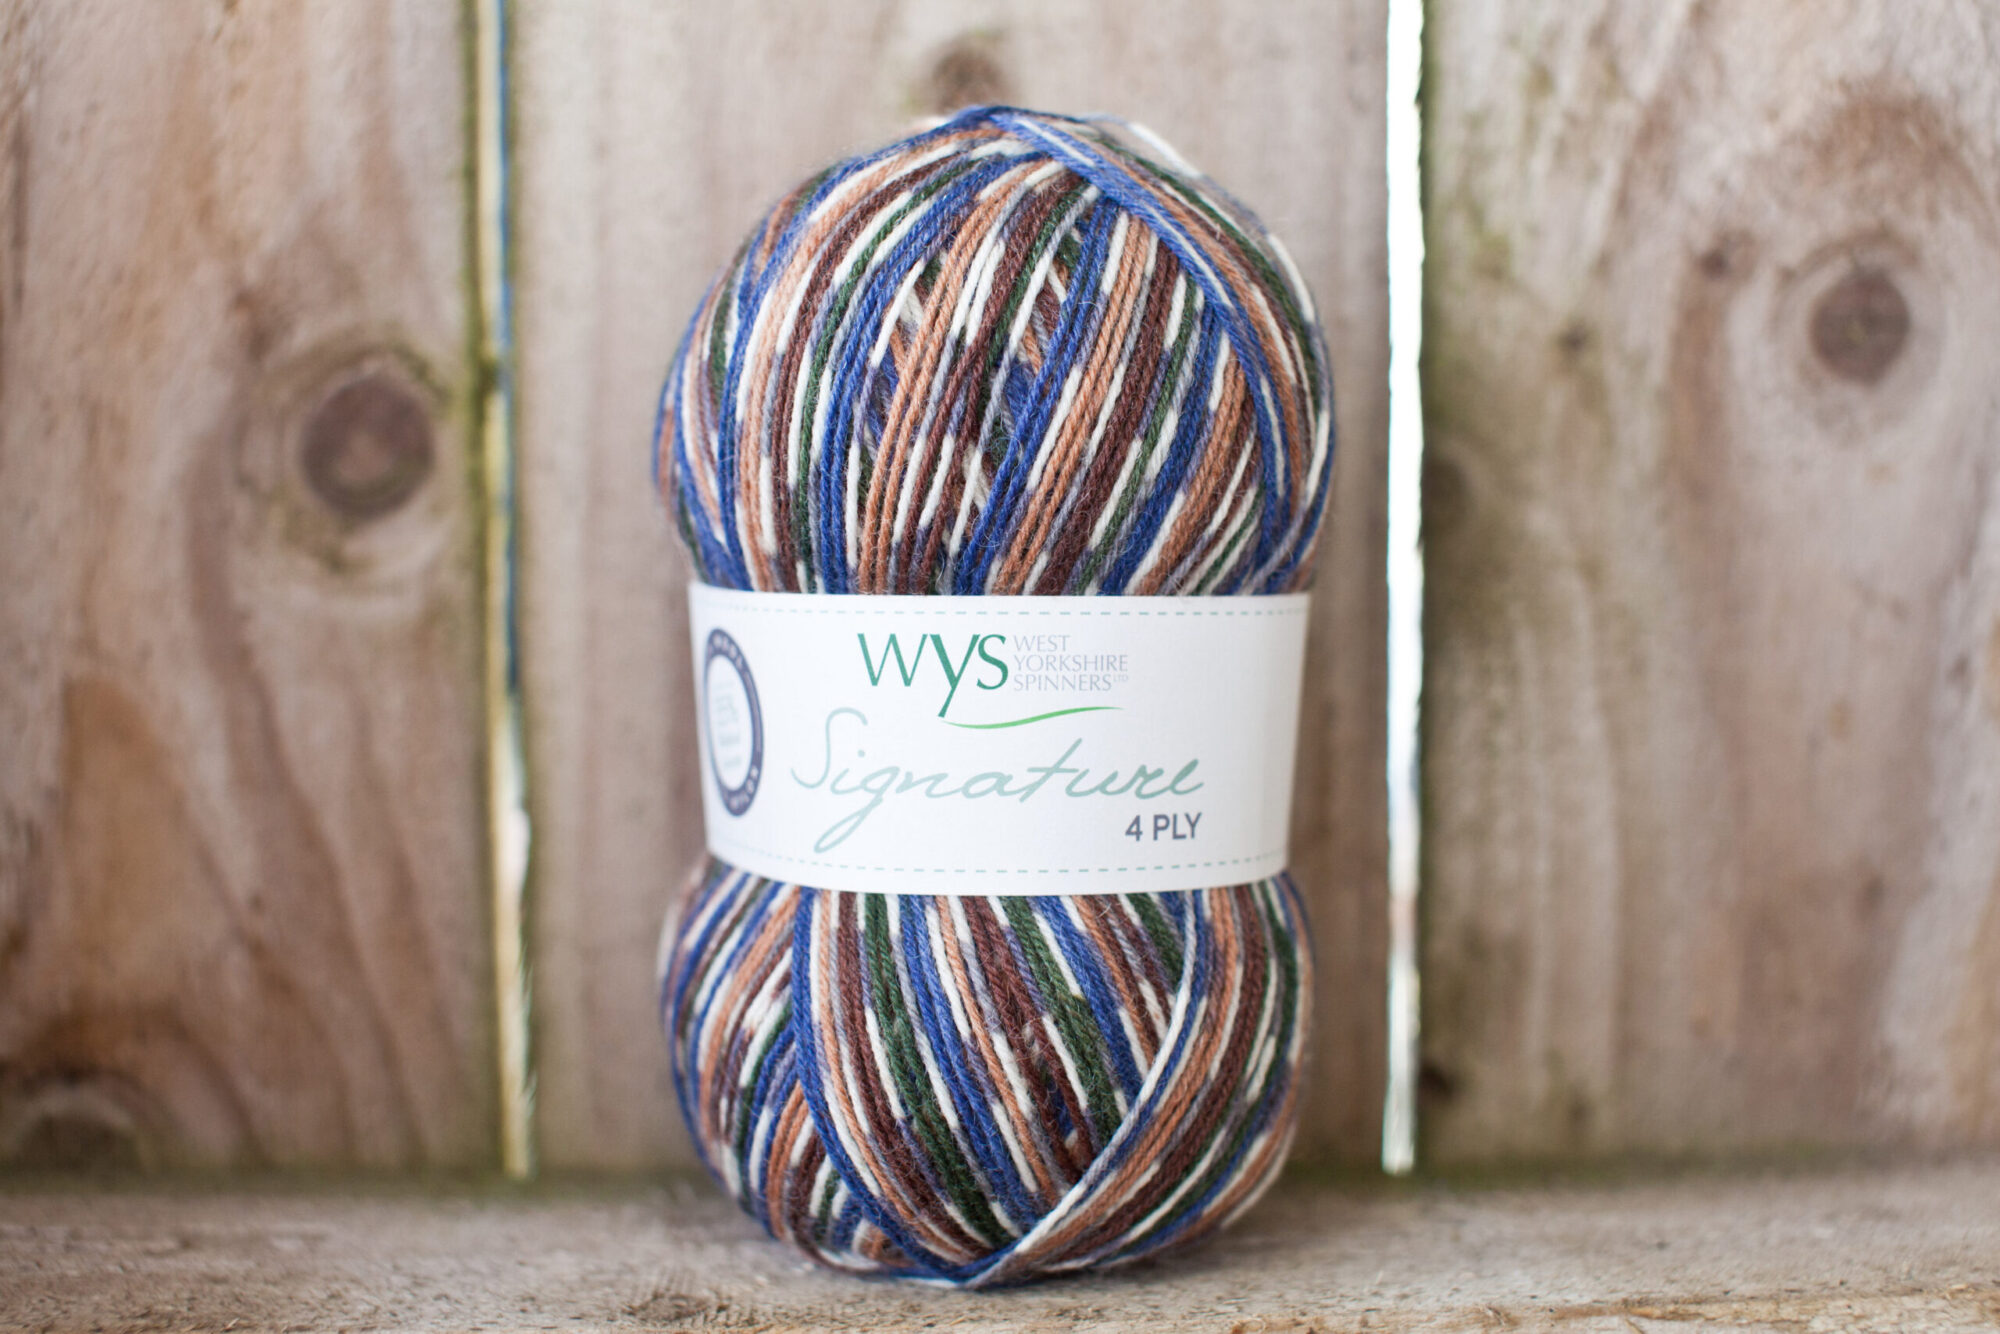 West Yorkshire Spinners Signature 4ply – Country Birds Range product image